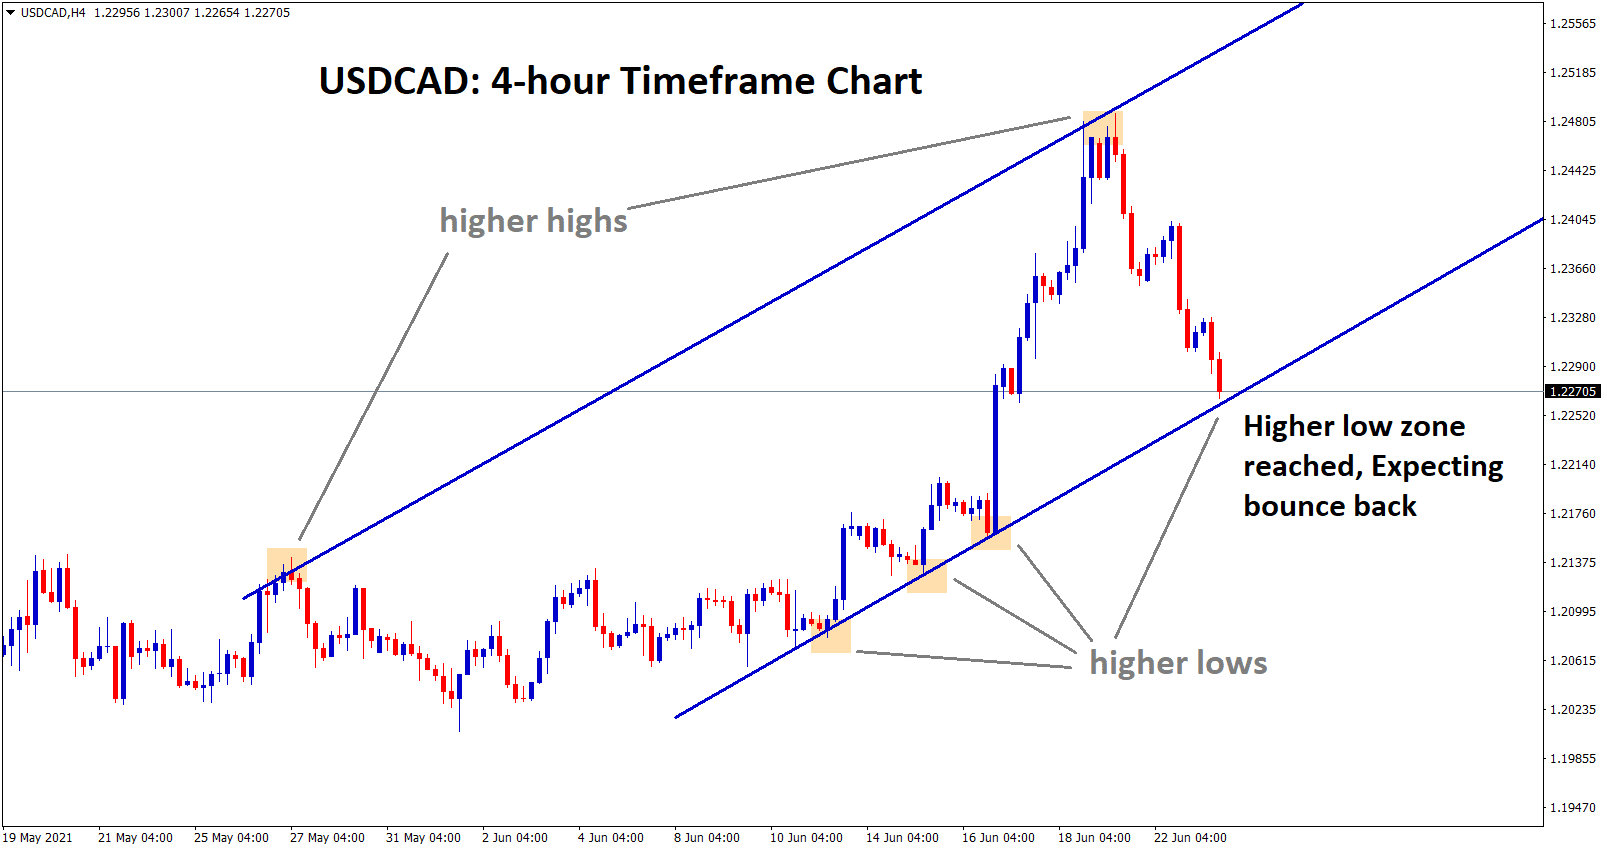 usdcad hits the higher low zone expecting bounce back soon